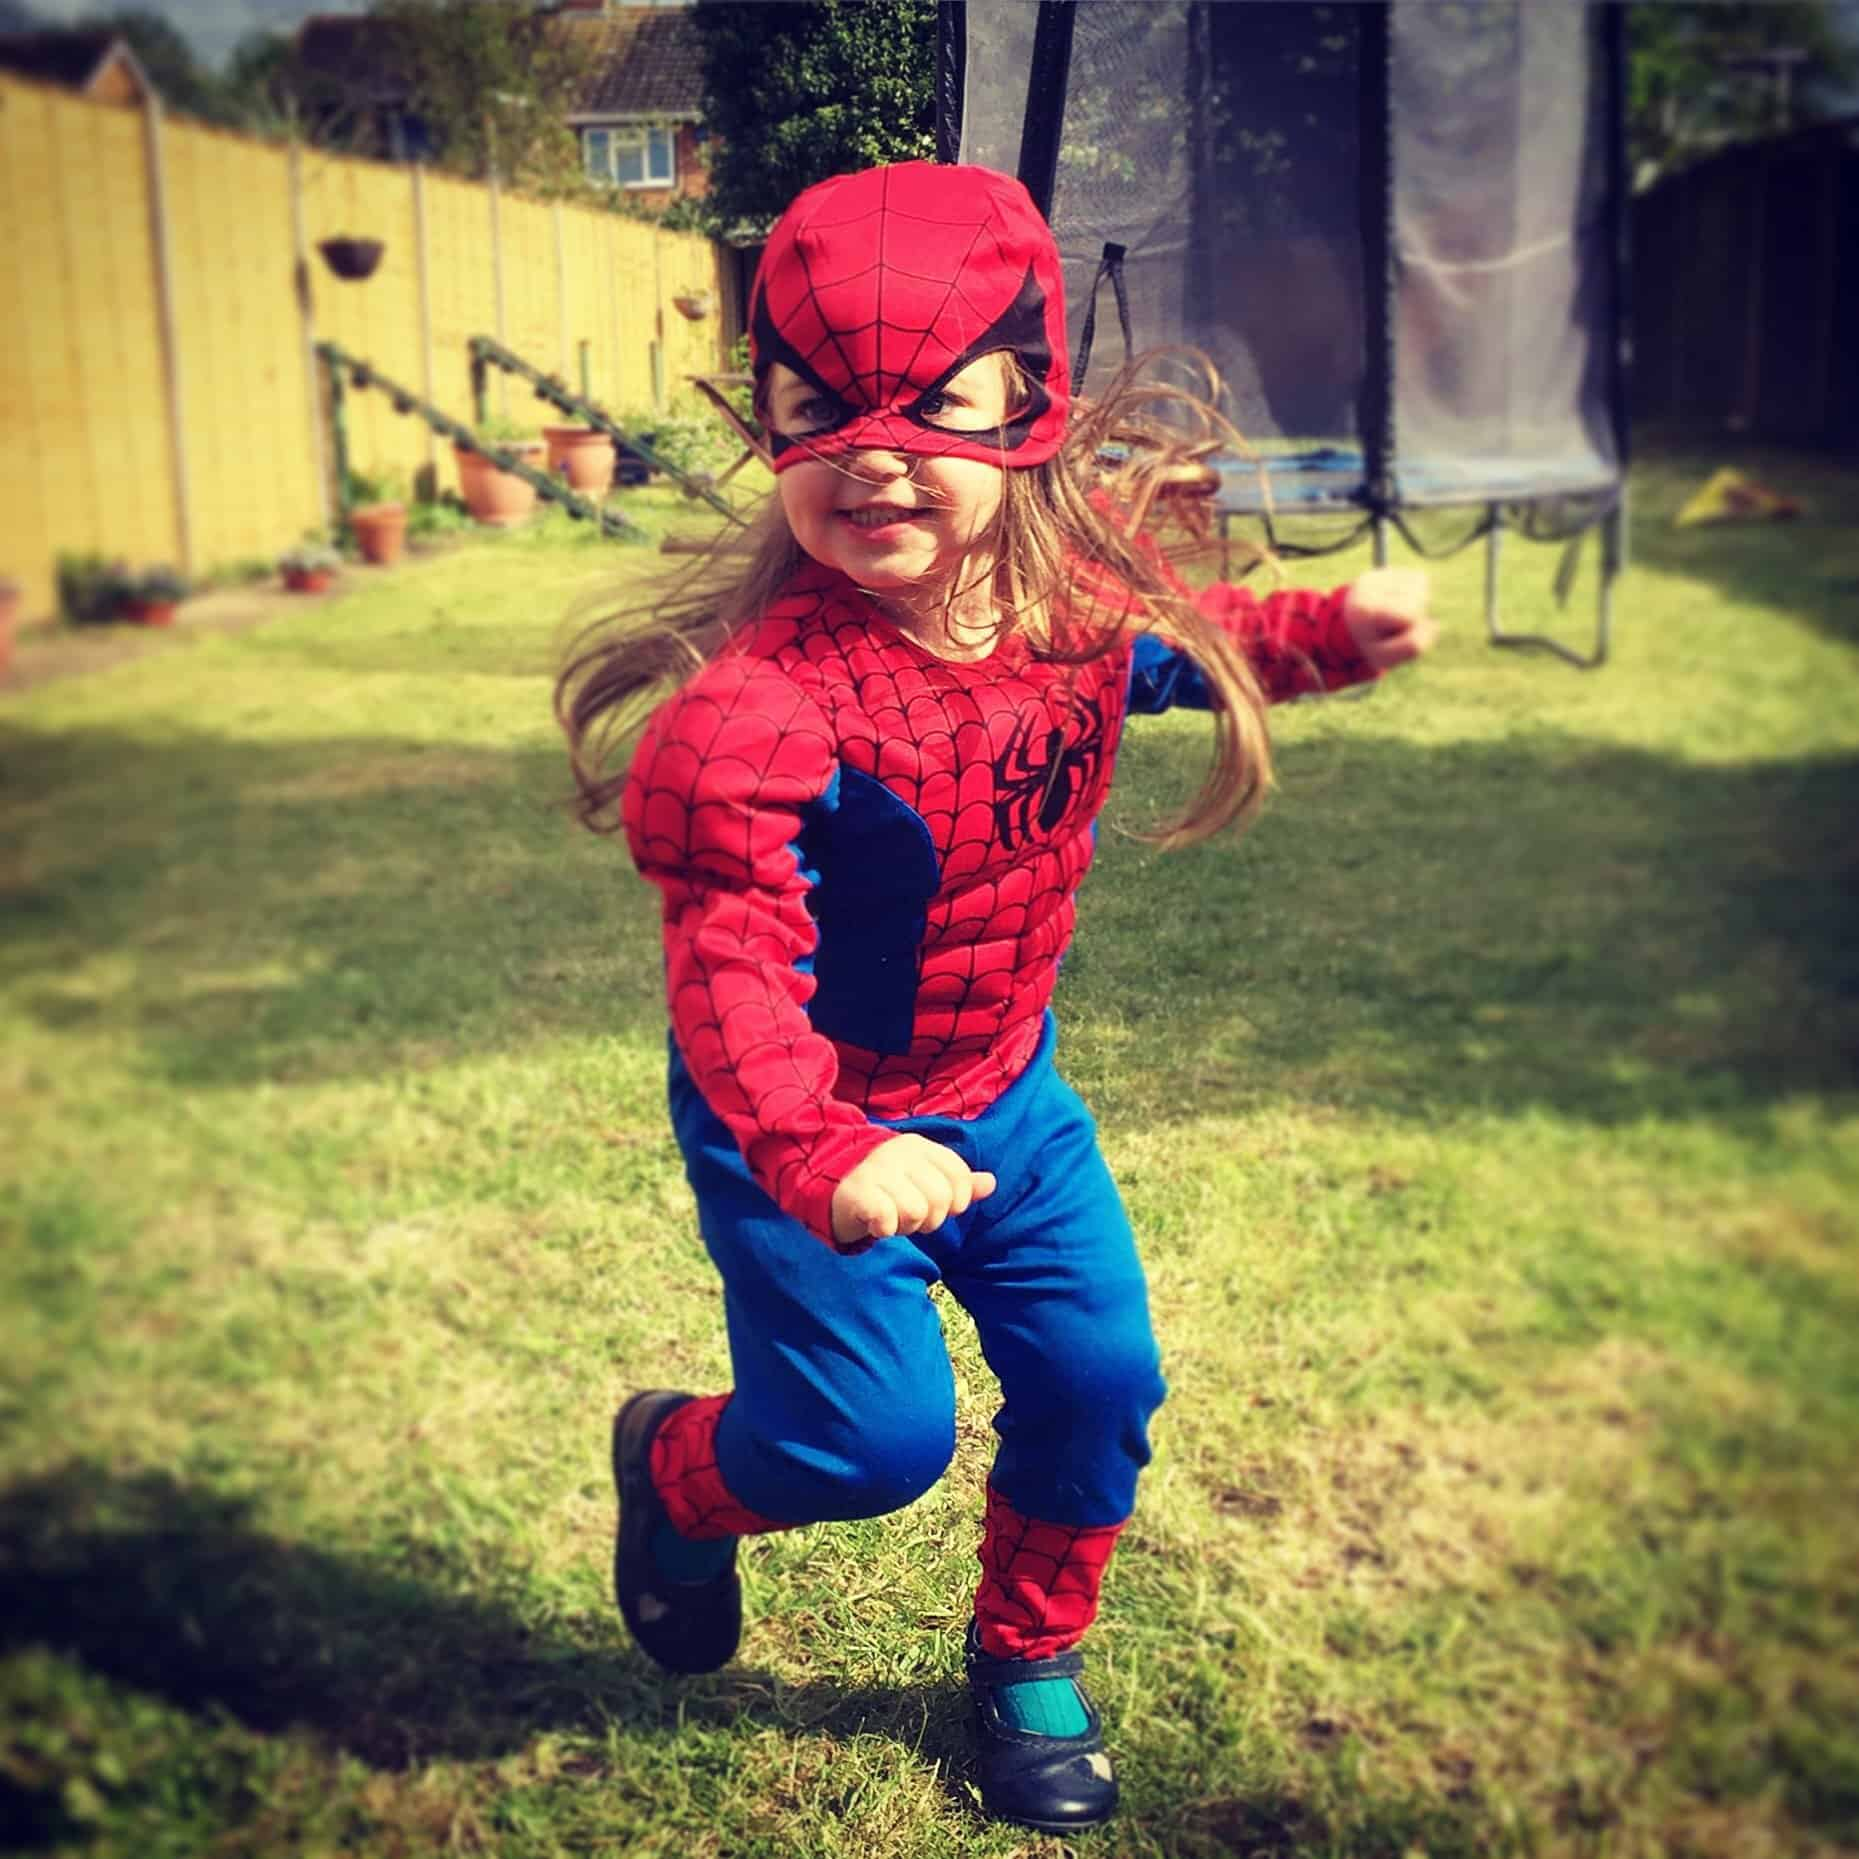 Thea as Spiderman